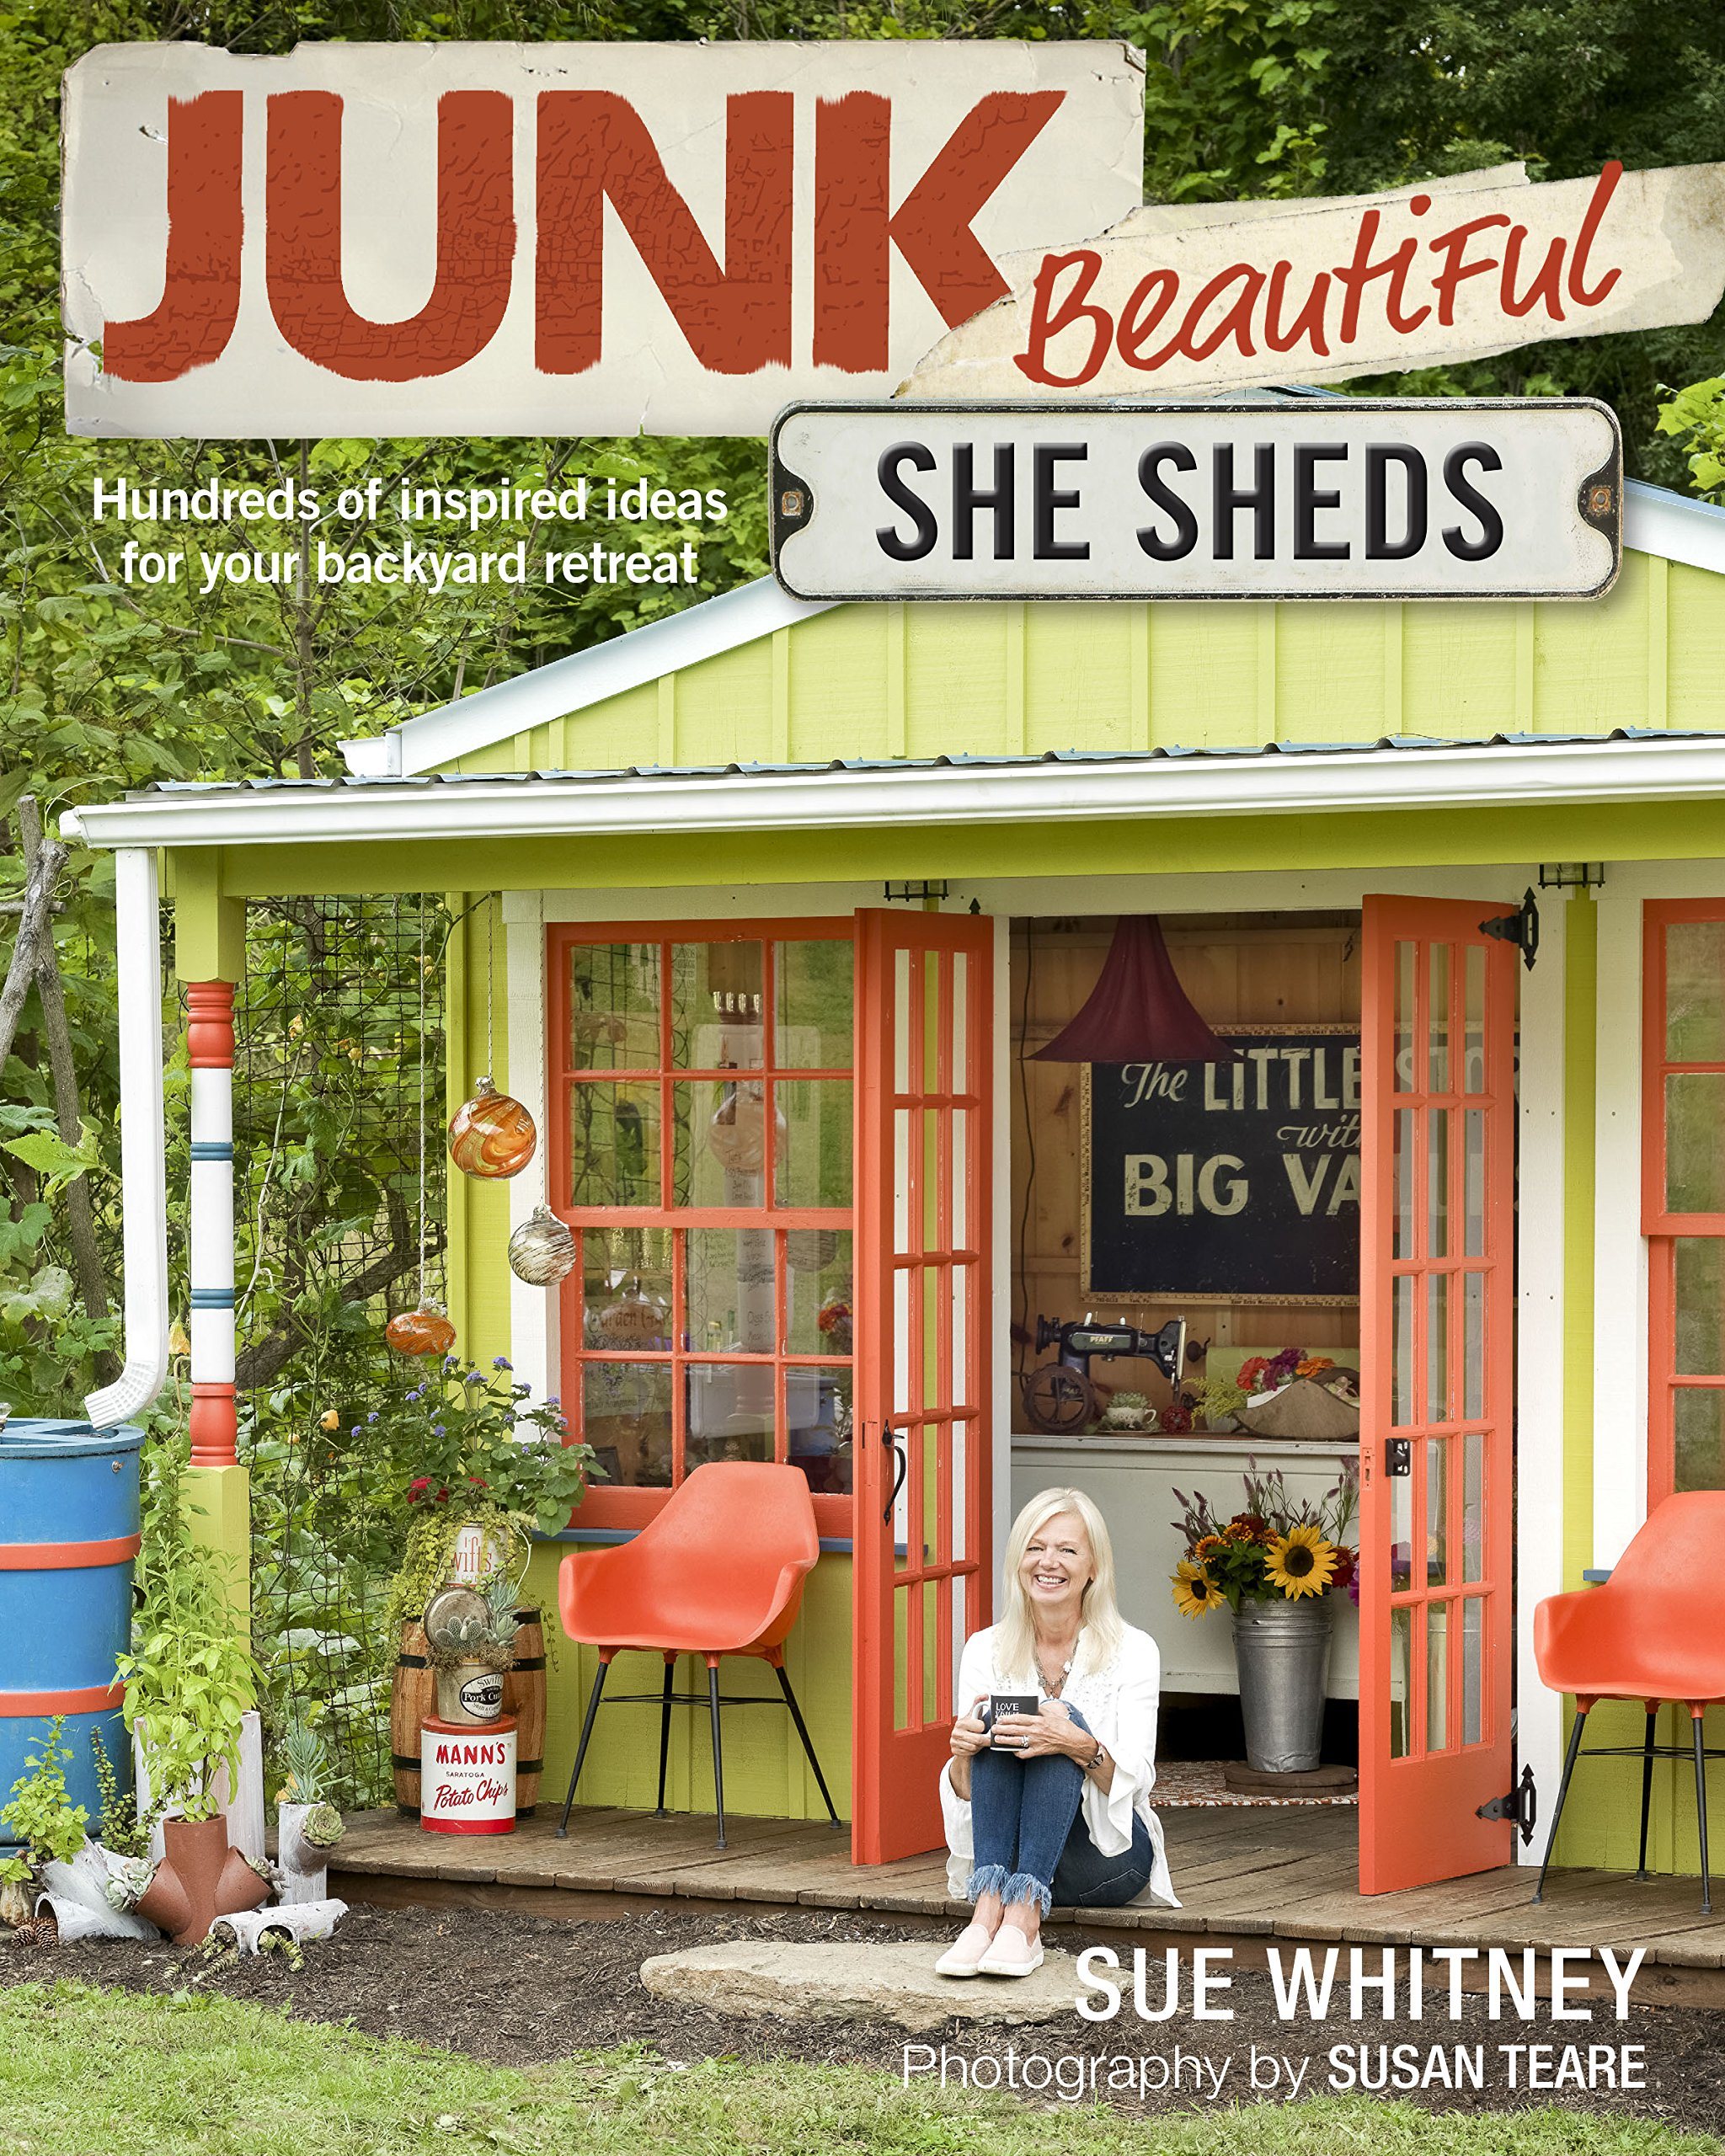 Junk Beautiful She Sheds Hundreds Of Inspired Ideas For Your